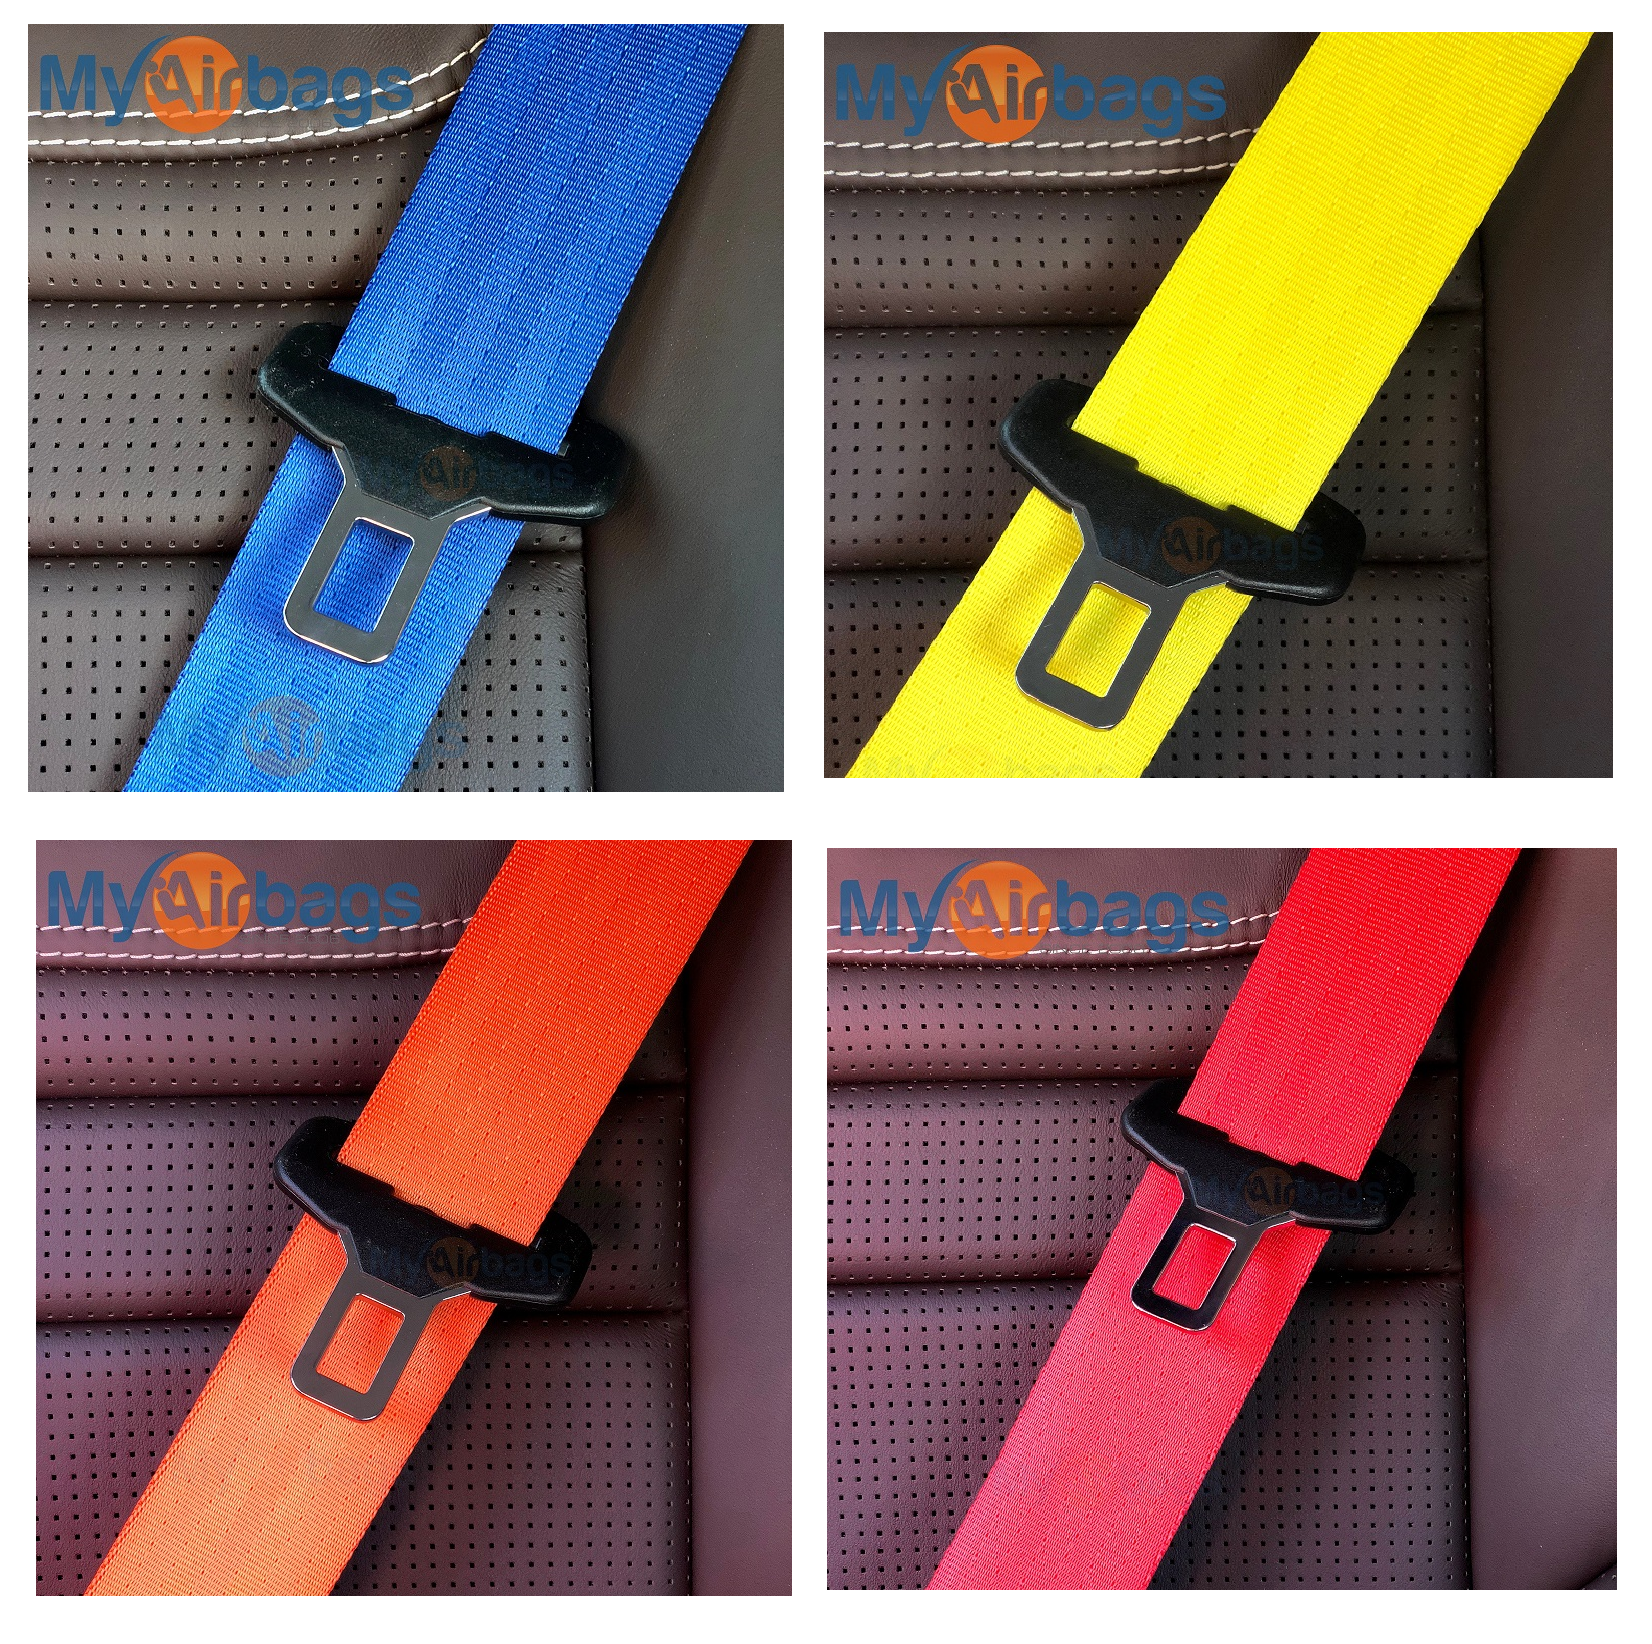 CUSTOM-COLOR-SEAT-BELT-REPLACEMENT-MYAIRBAGS-1.png